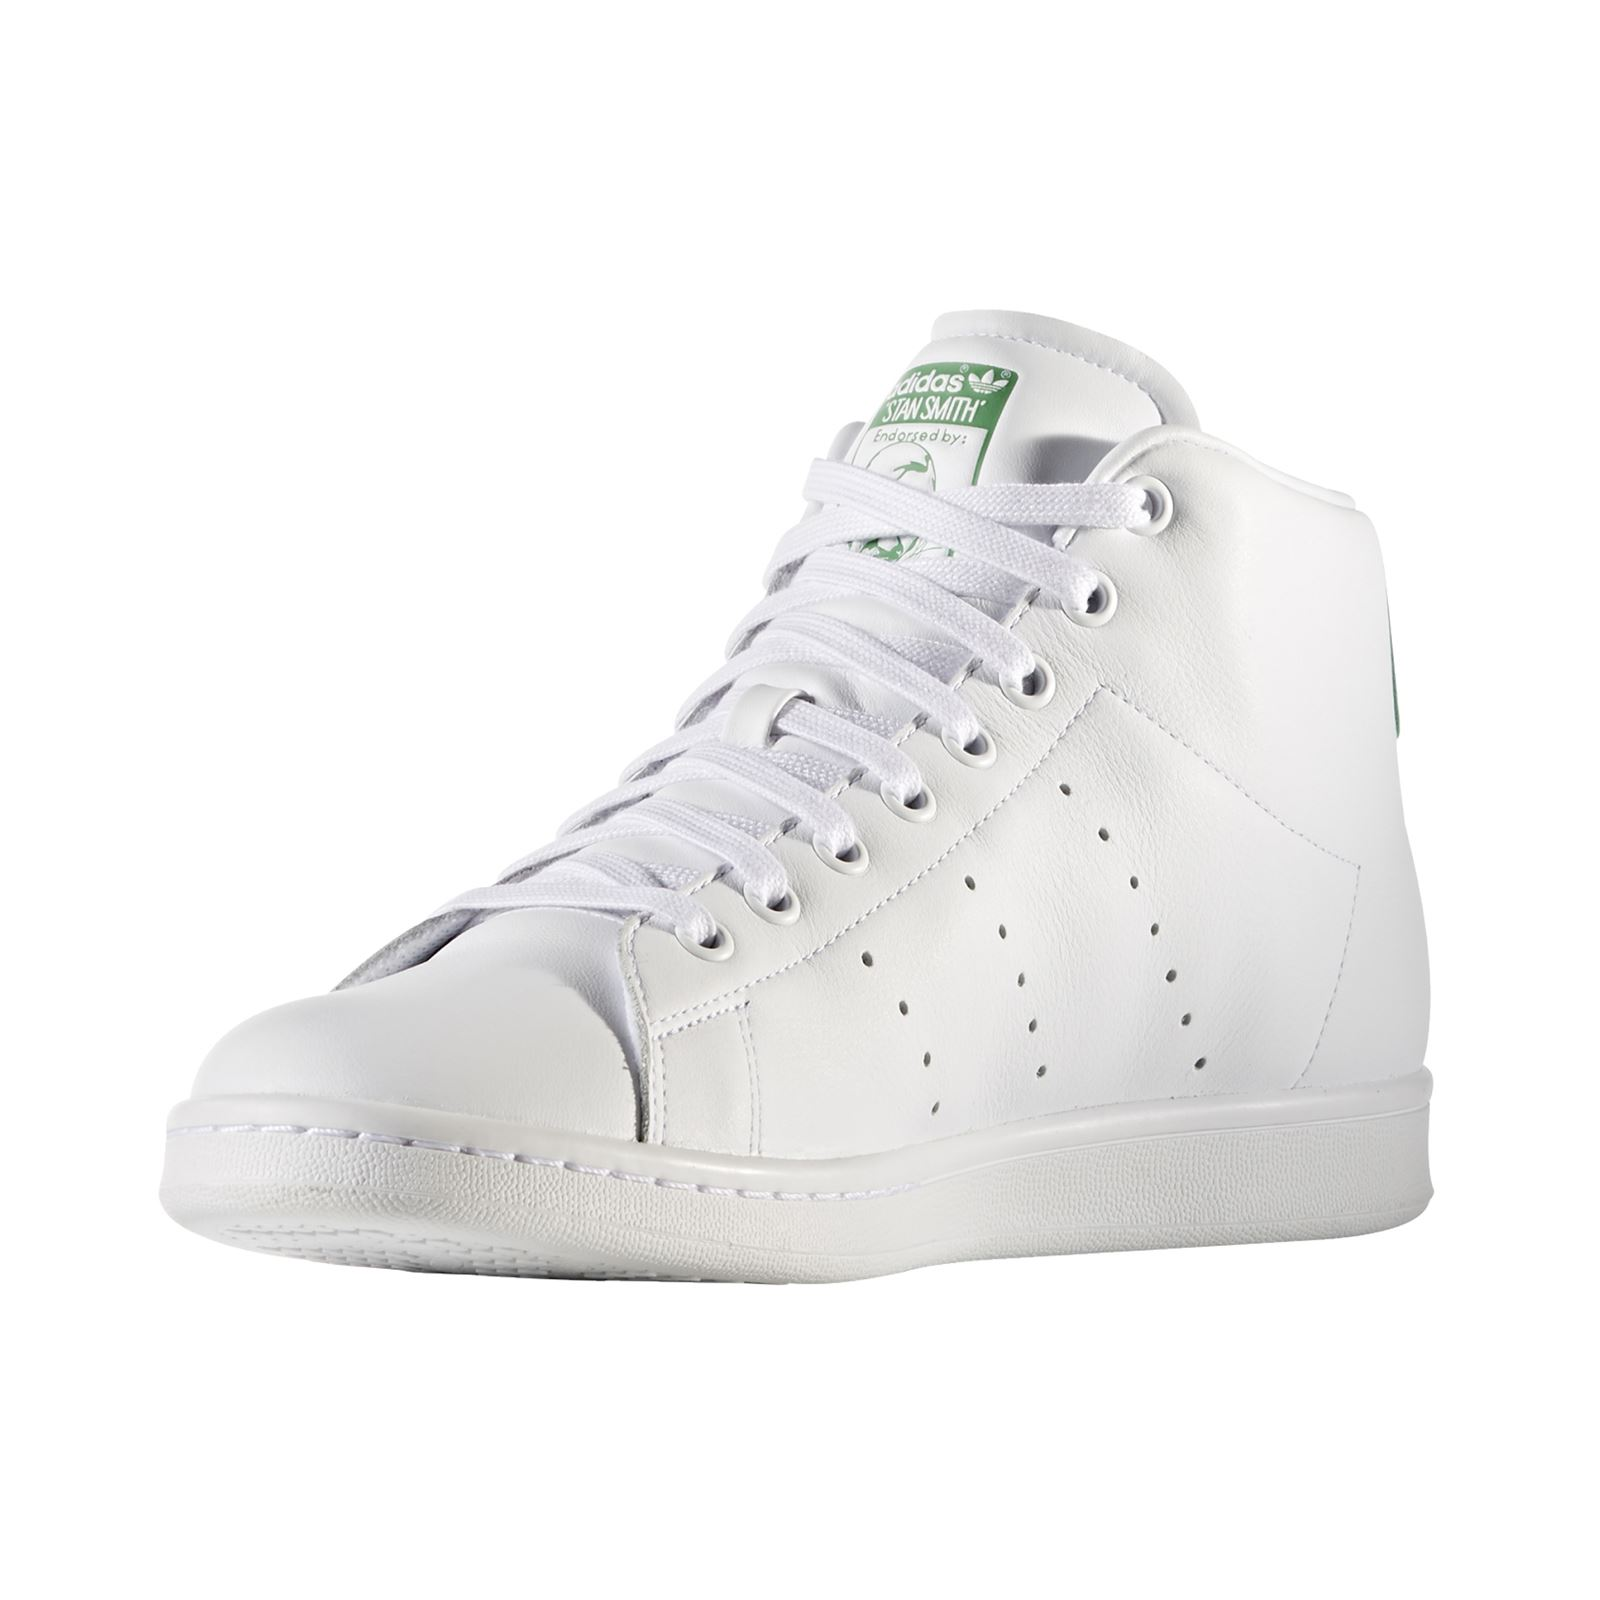 ADIDAS ORIGINALS Stan Smith - Baskets montantes en cuir - blanc